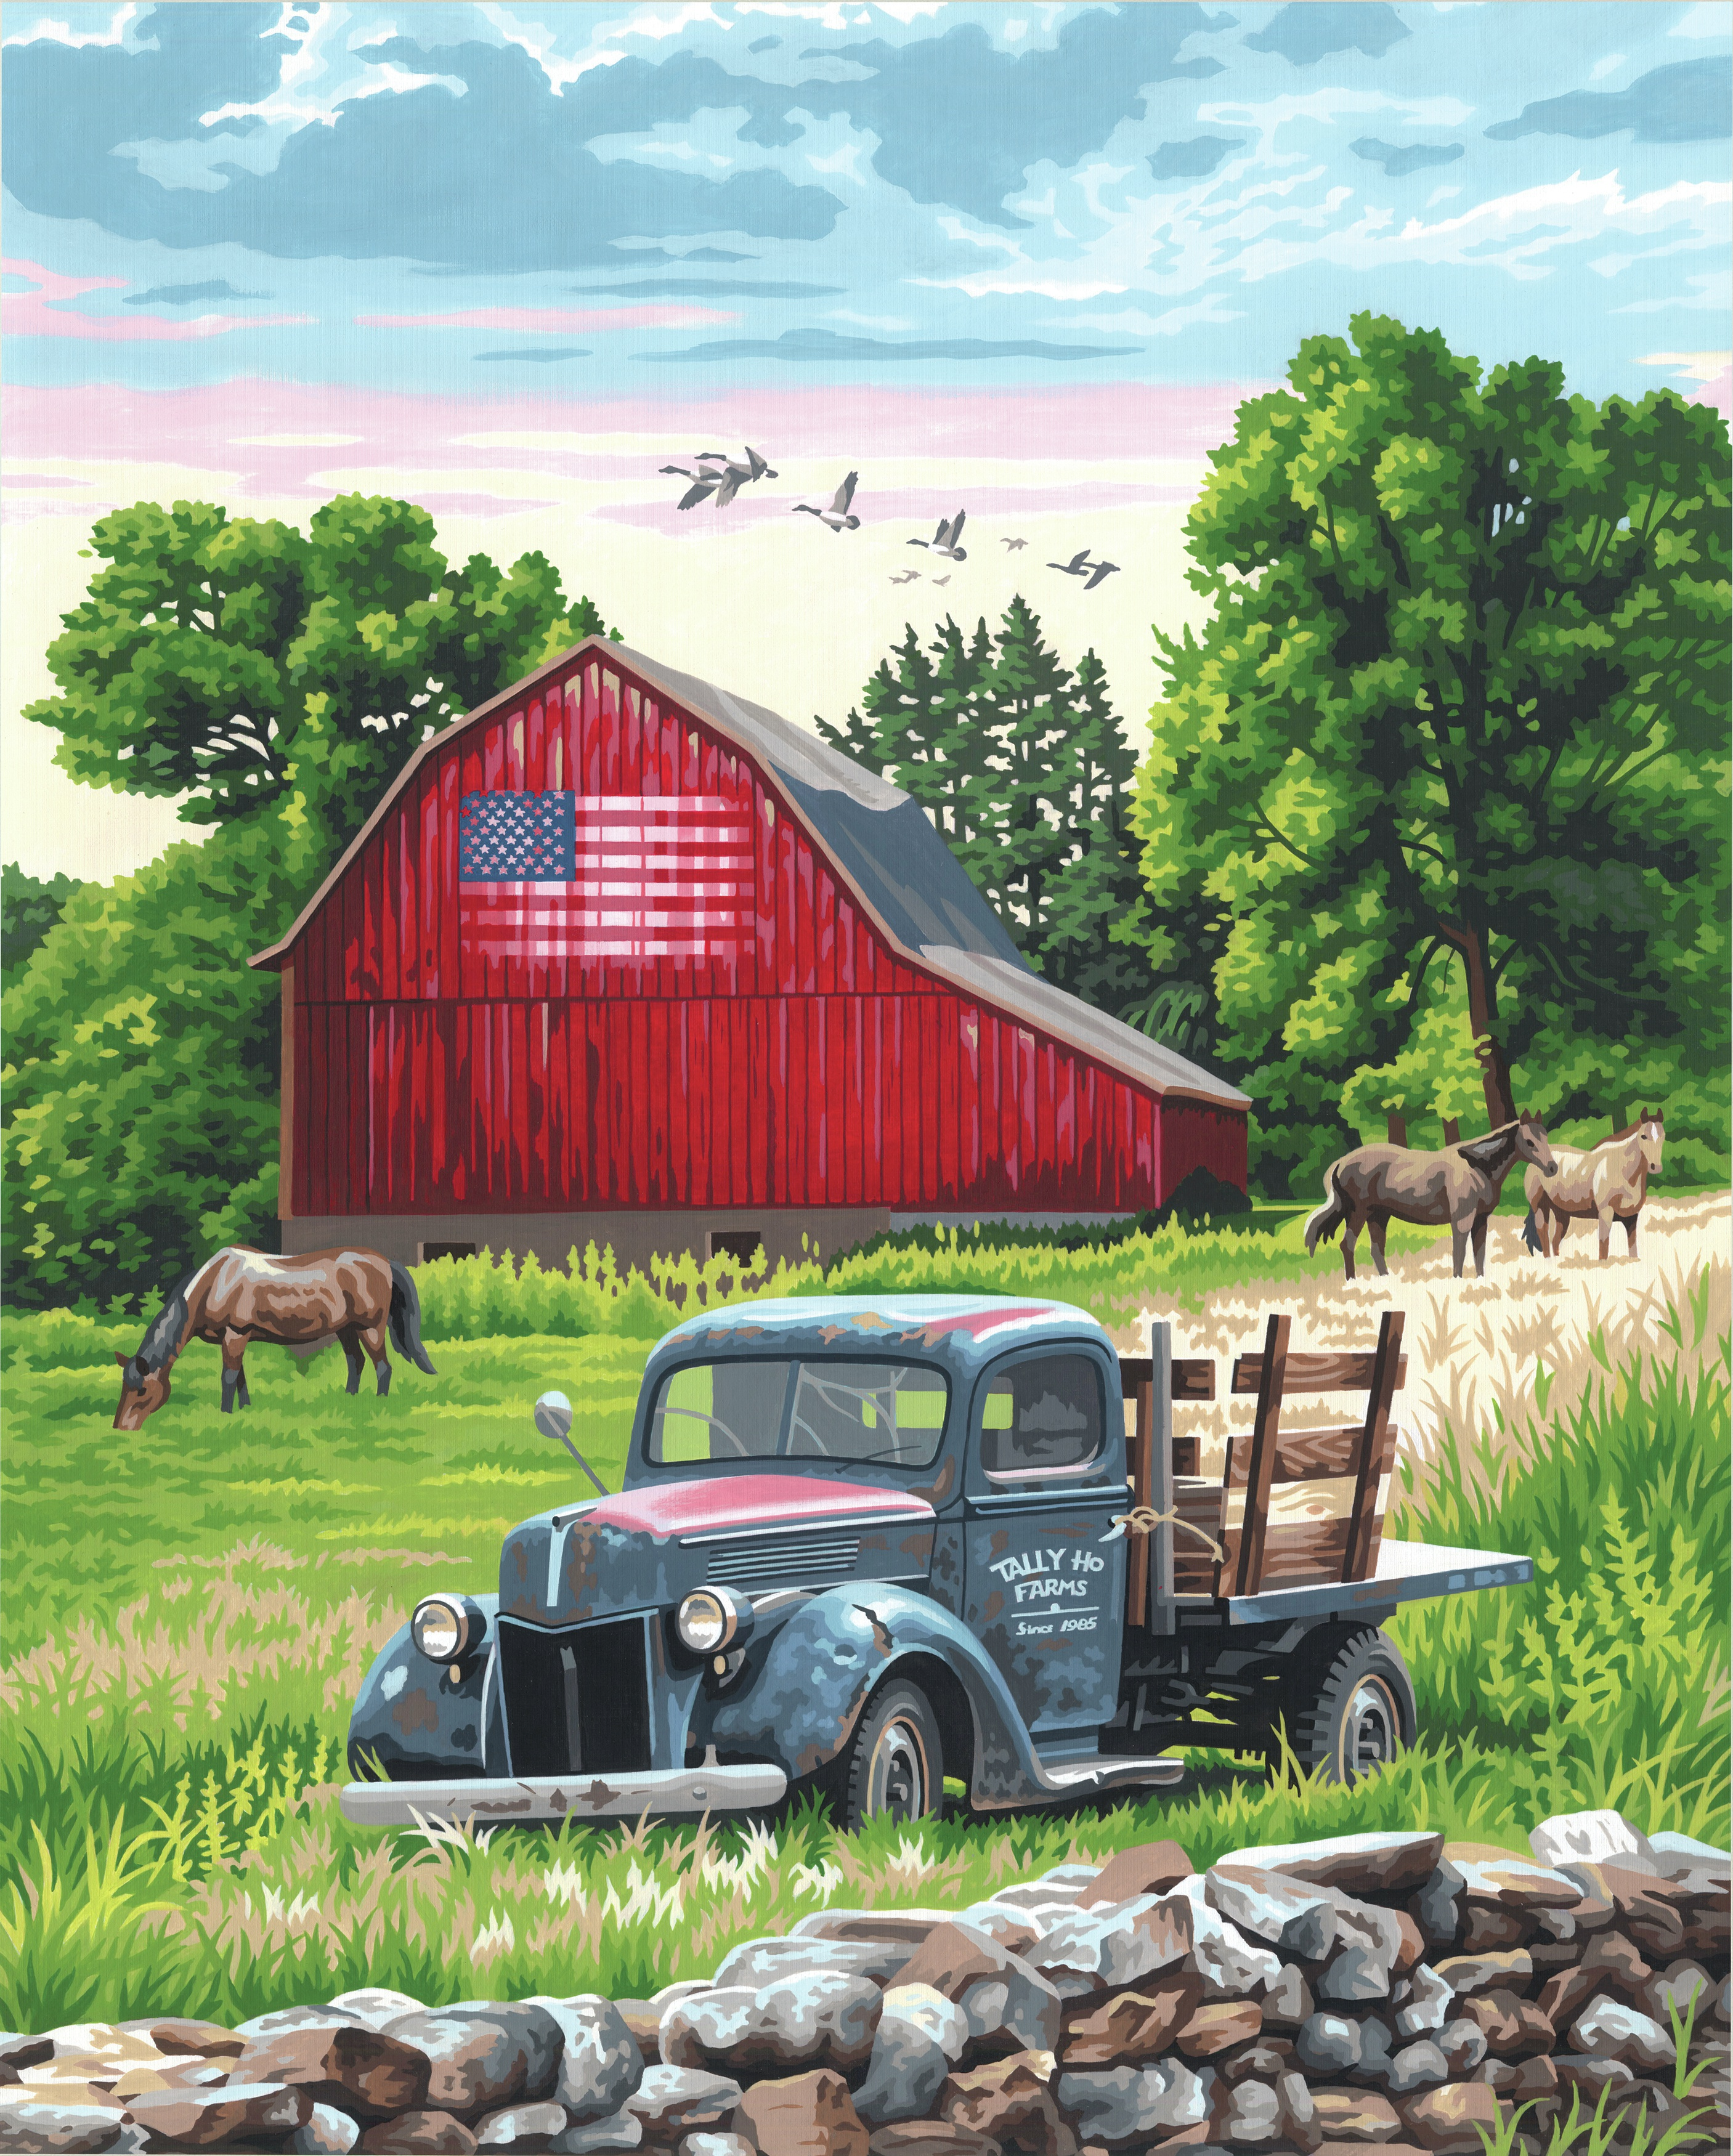 Paint Works Paint By Number Kit 16X20-Summer Farm